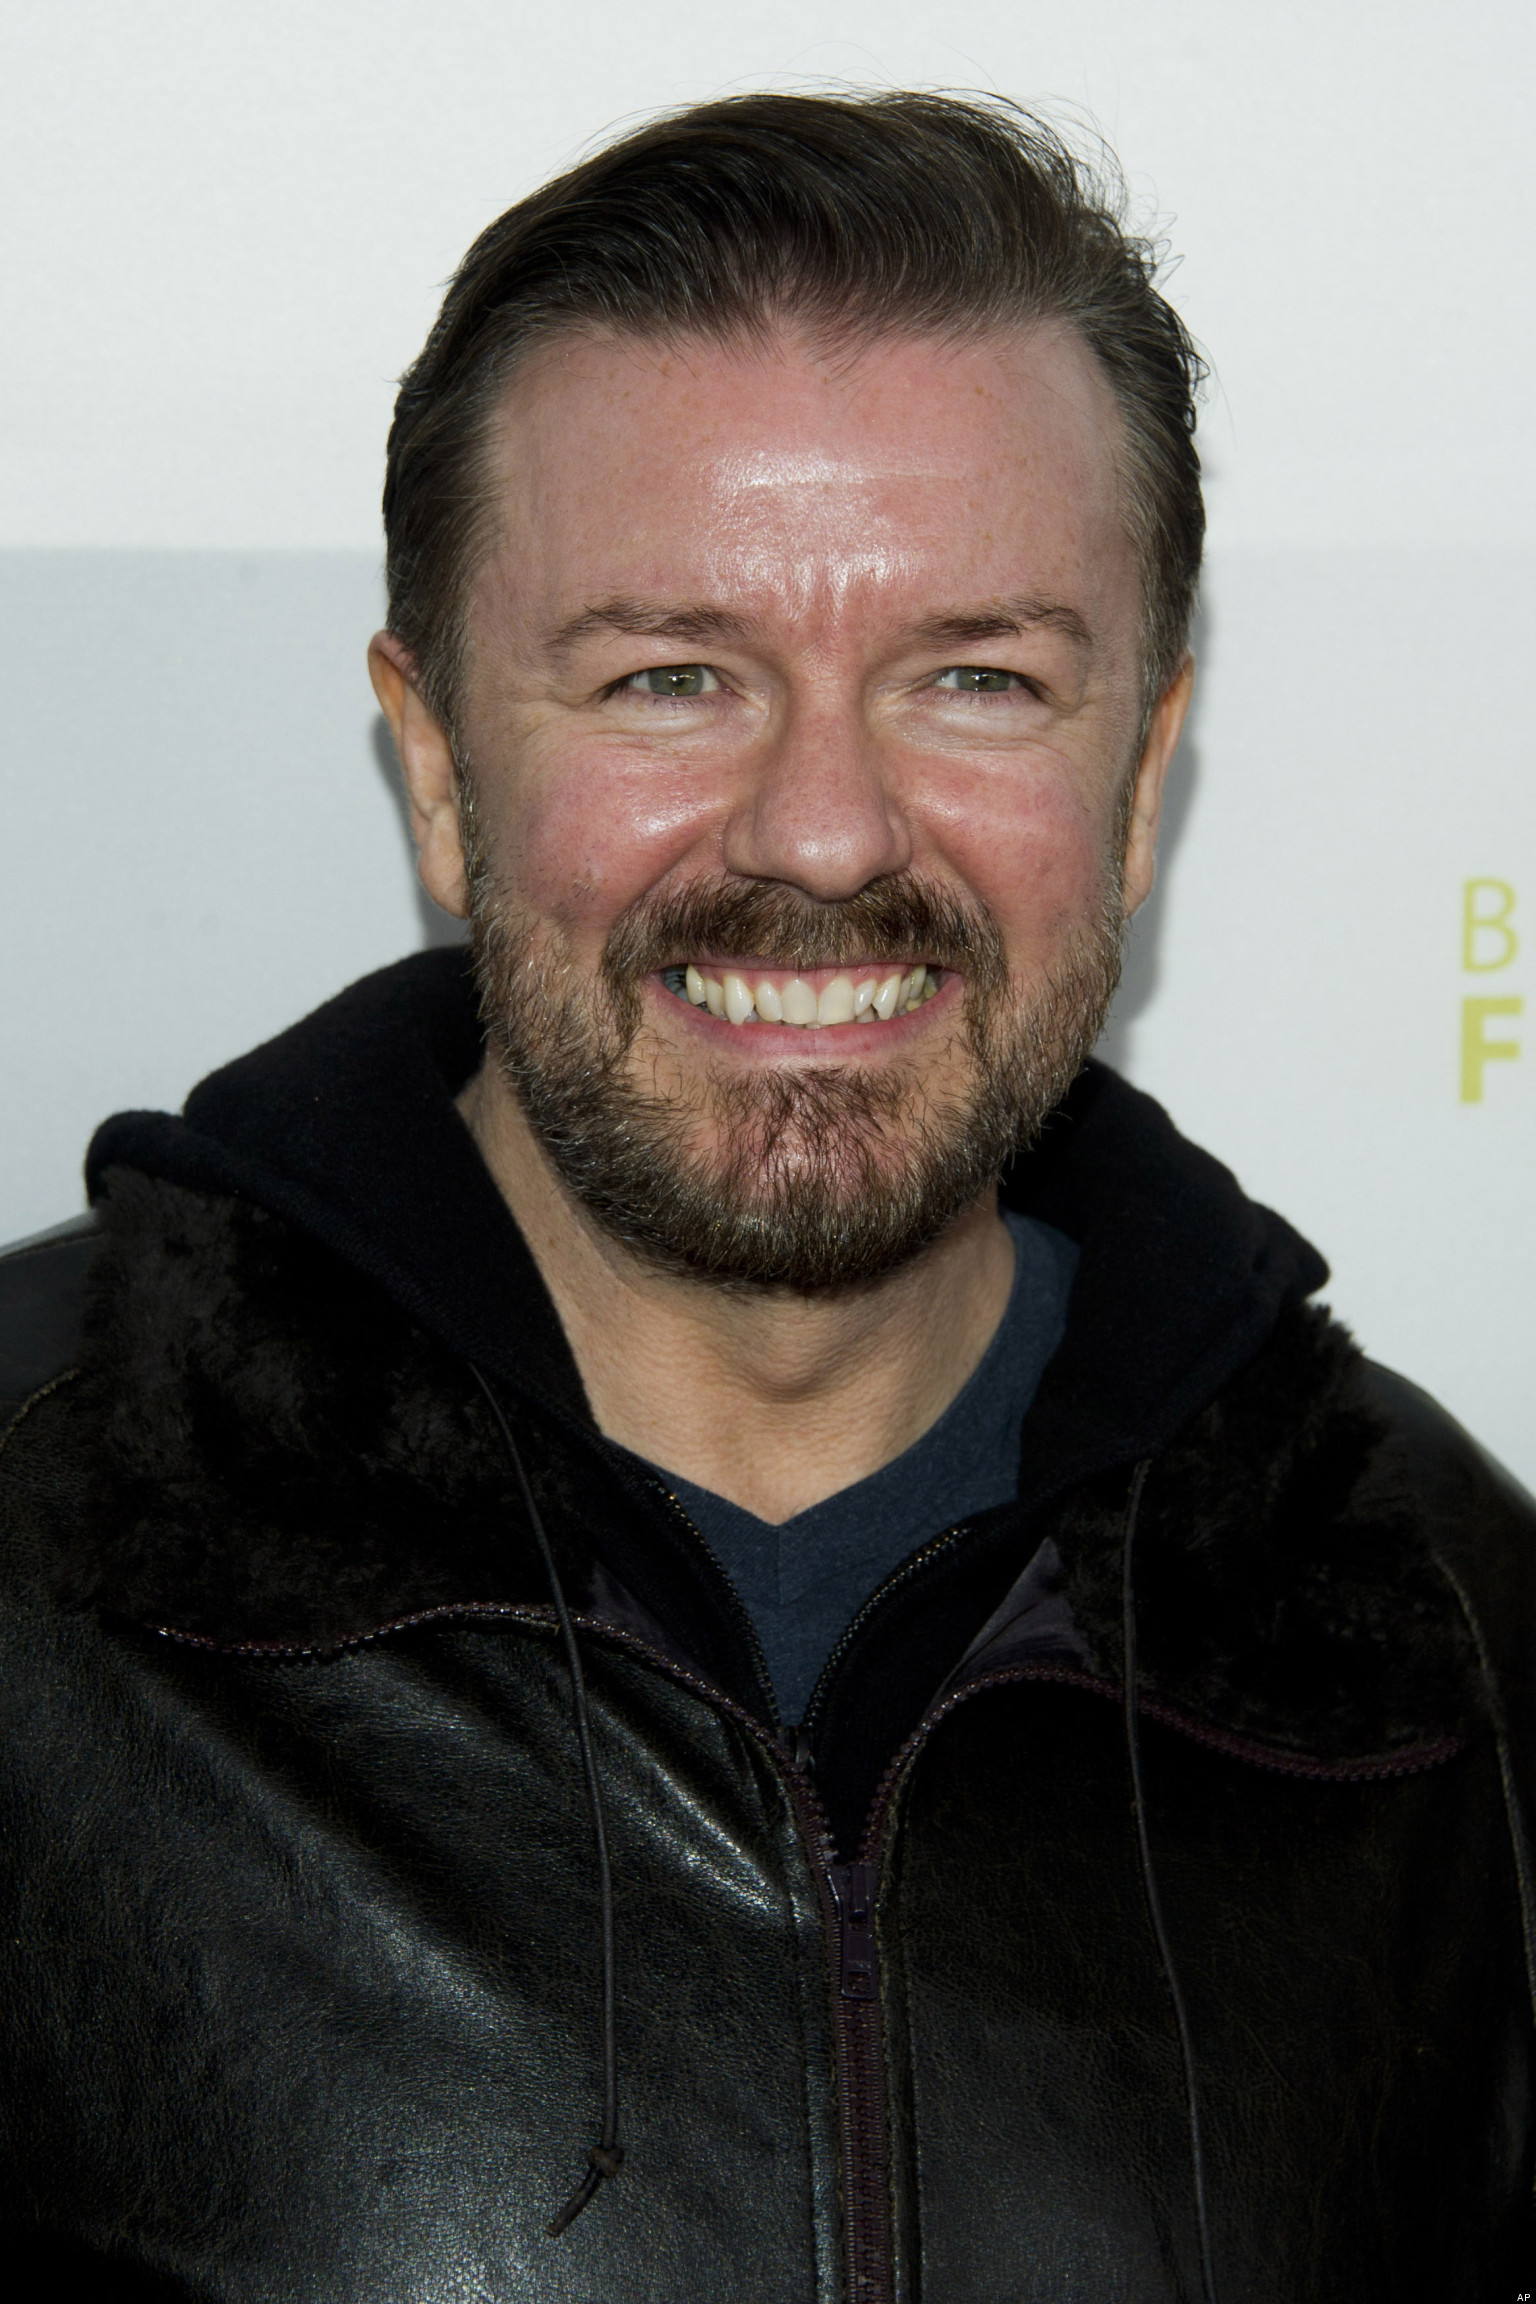 ricky gervais tour datesricky gervais show, ricky gervais stand up, ricky gervais twitter, ricky gervais golden globes, ricky gervais tour, ricky gervais jane fallon, ricky gervais почему я атеист, ricky gervais animals, ricky gervais кинопоиск, ricky gervais height, ricky gervais youtube, ricky gervais net worth, ricky gervais wikipedia, ricky gervais golden globes 2017, ricky gervais laugh, ricky gervais noah, ricky gervais stockholm, ricky gervais на русском, ricky gervais ellen, ricky gervais tour dates